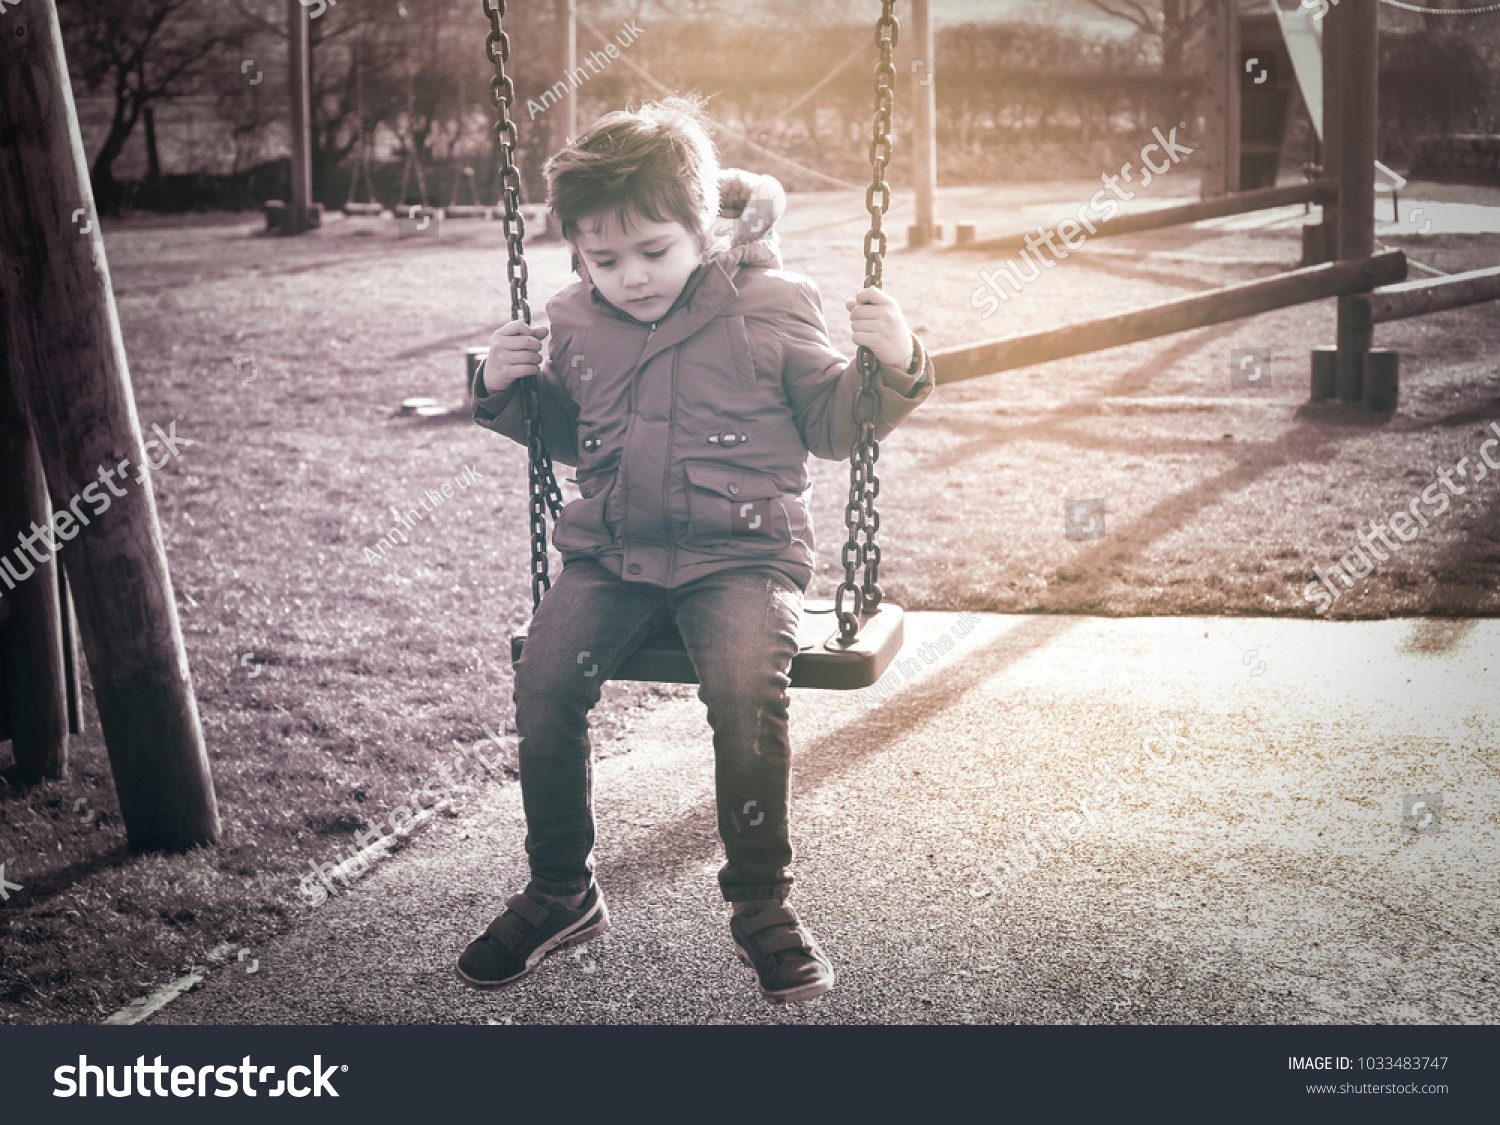 Lonely child with a sad face sitting alone on swing in the playground in retro filter